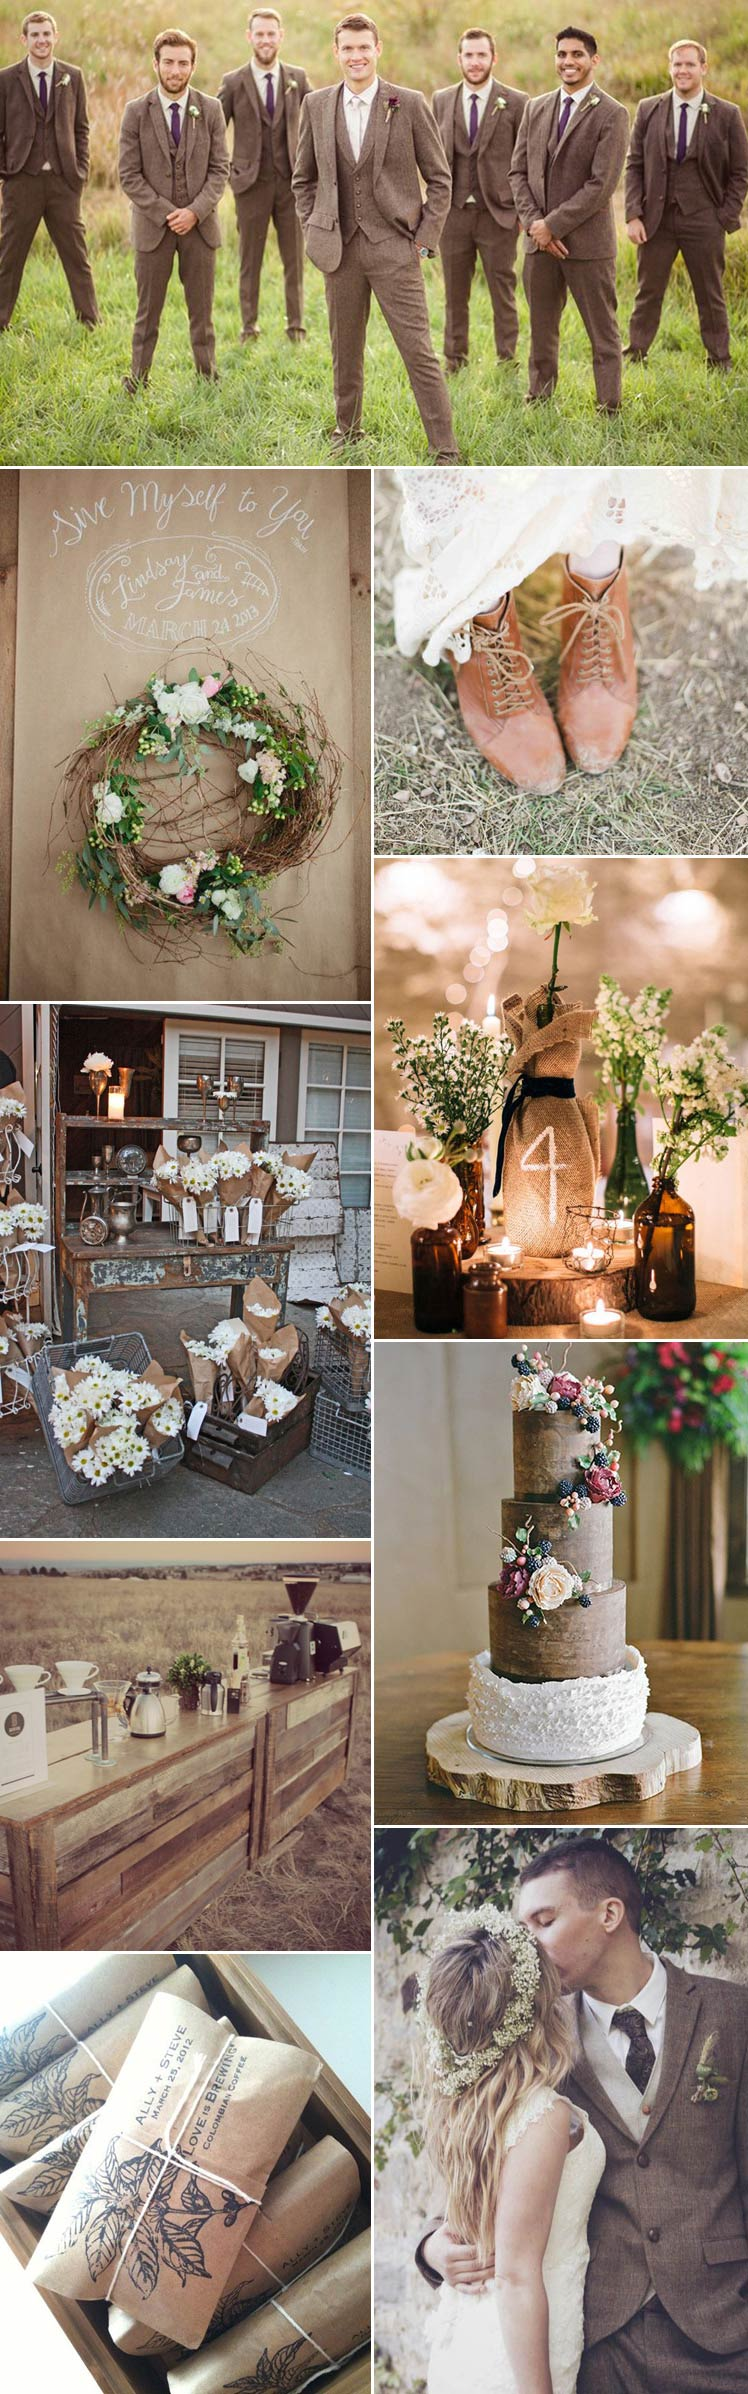 explore coffee and cream for a wedding theme